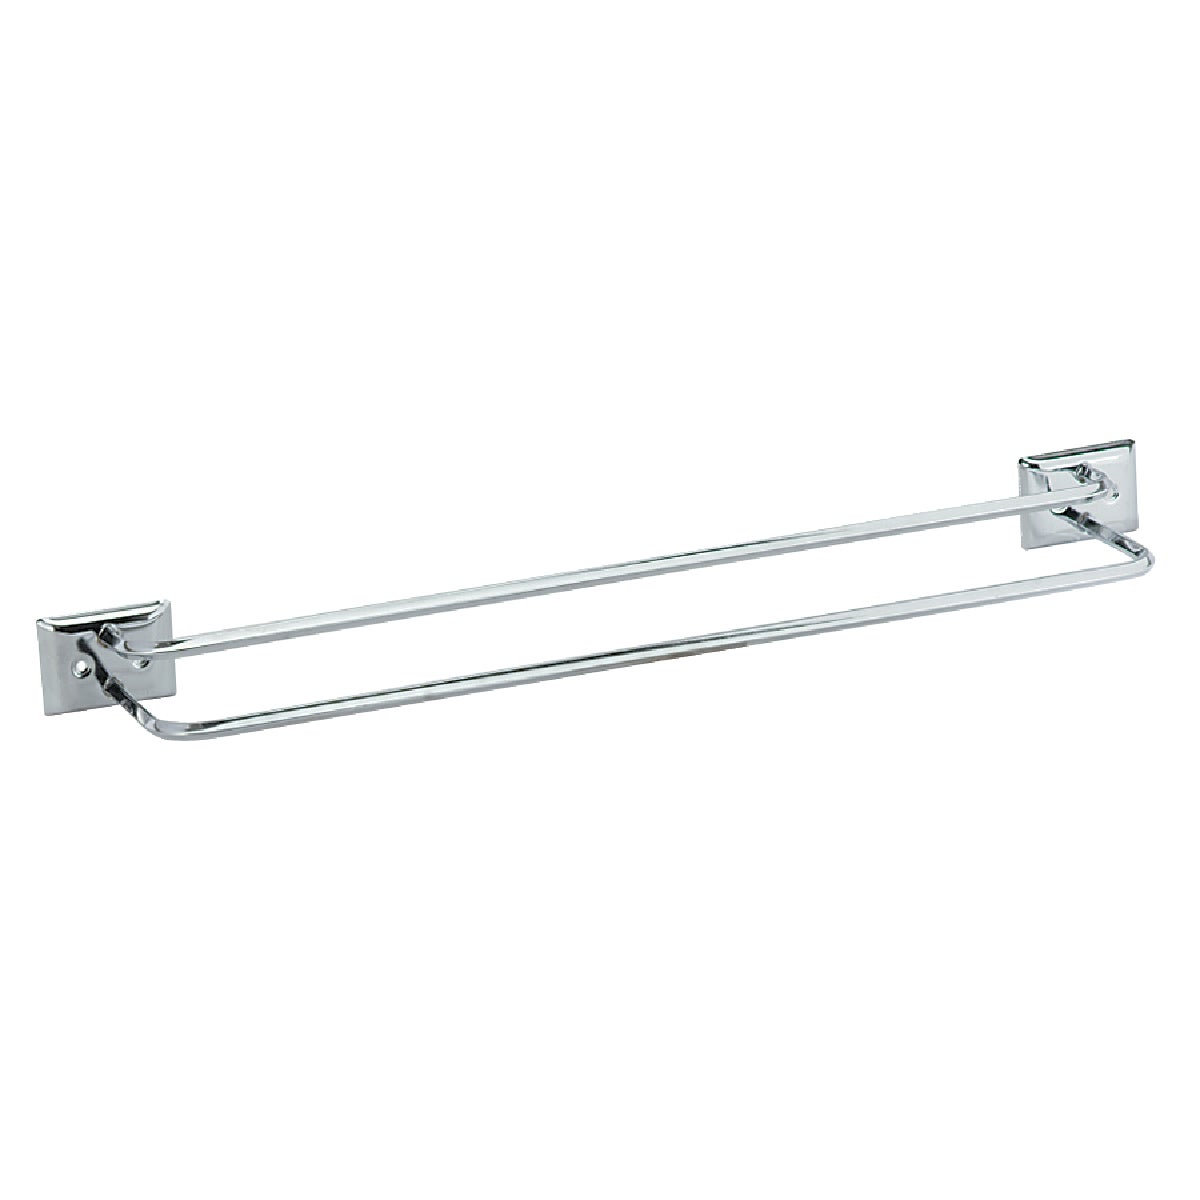 "18"" CHROME TOWEL BAR - 38140 by Decko Bath"